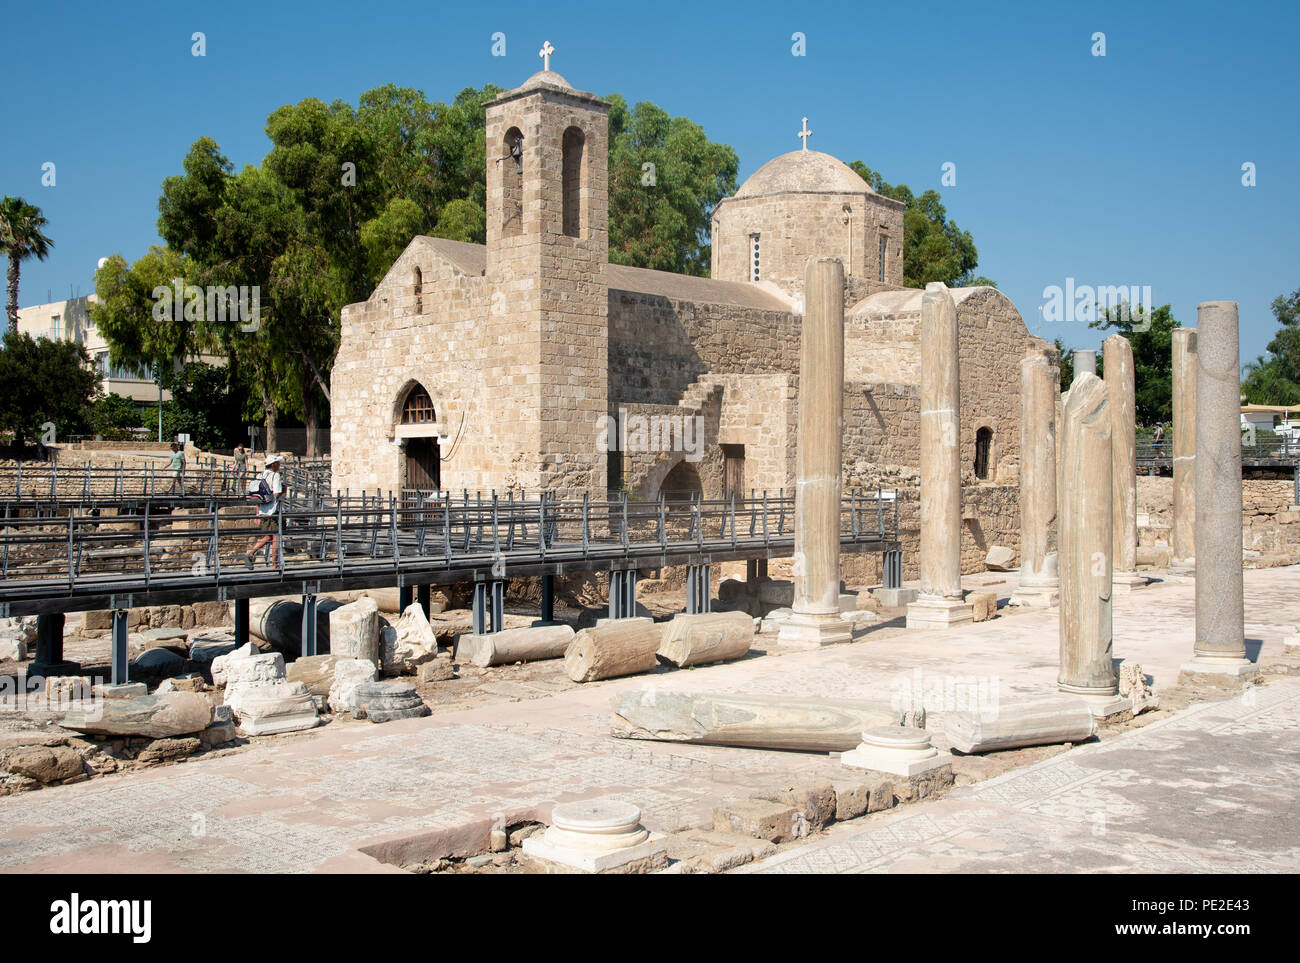 Holy Ancient orthodox Christian church of Ayia Kyriaki Chrysopolitissa at Paphos town in Cyprus. - Stock Image